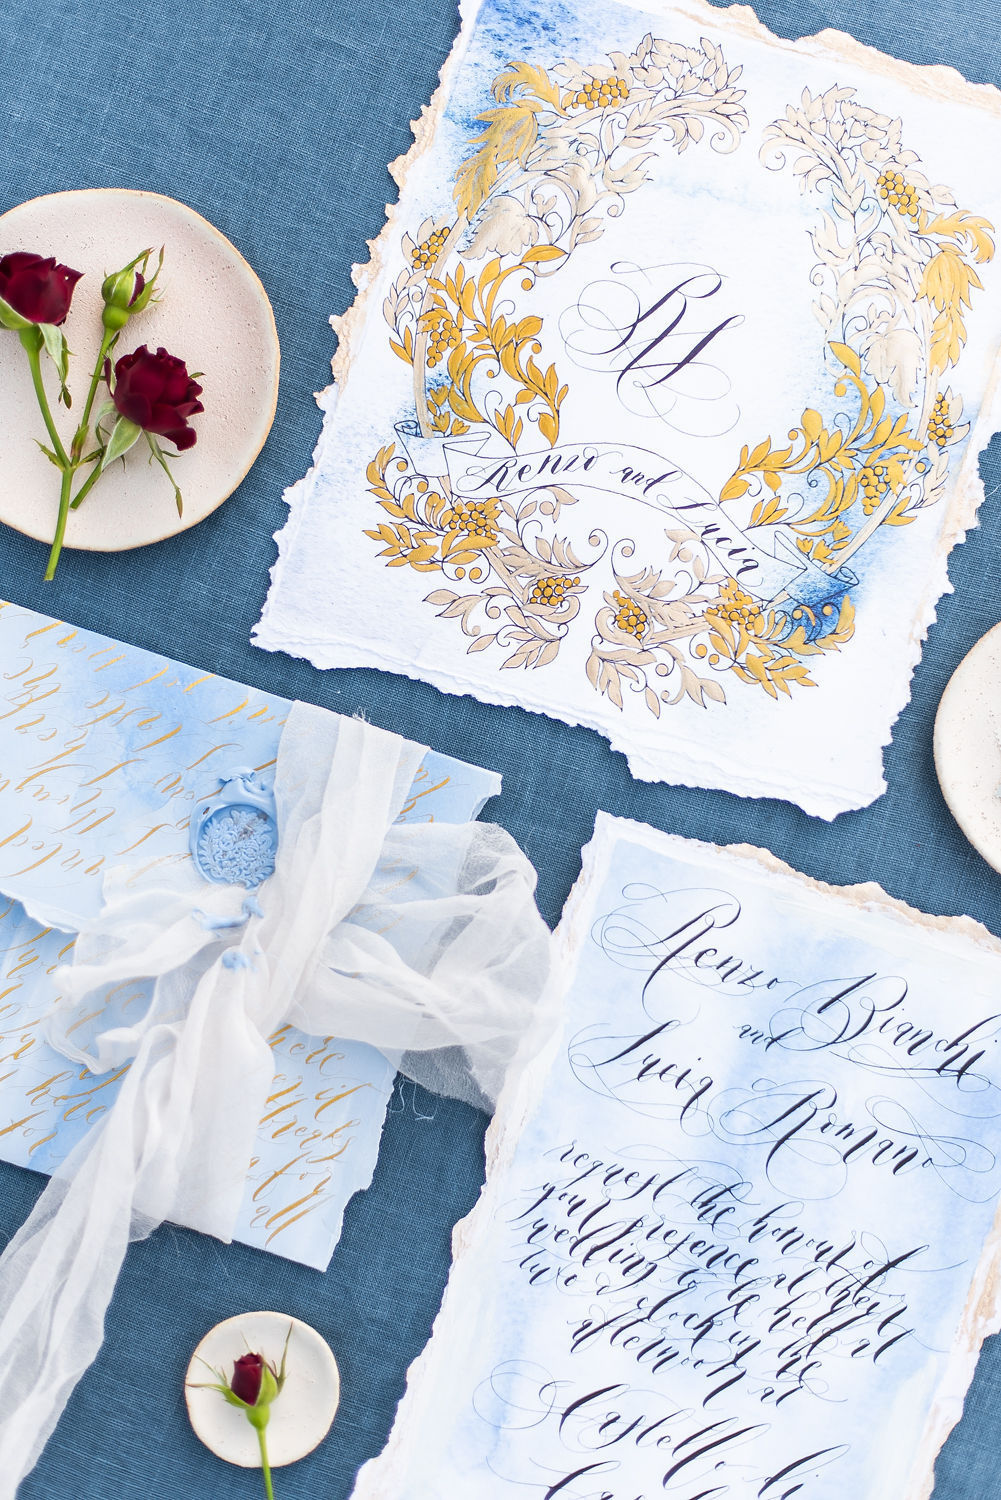 Weddings stationery tips for destination weddings showing luxury wedding stationery with blue and gold